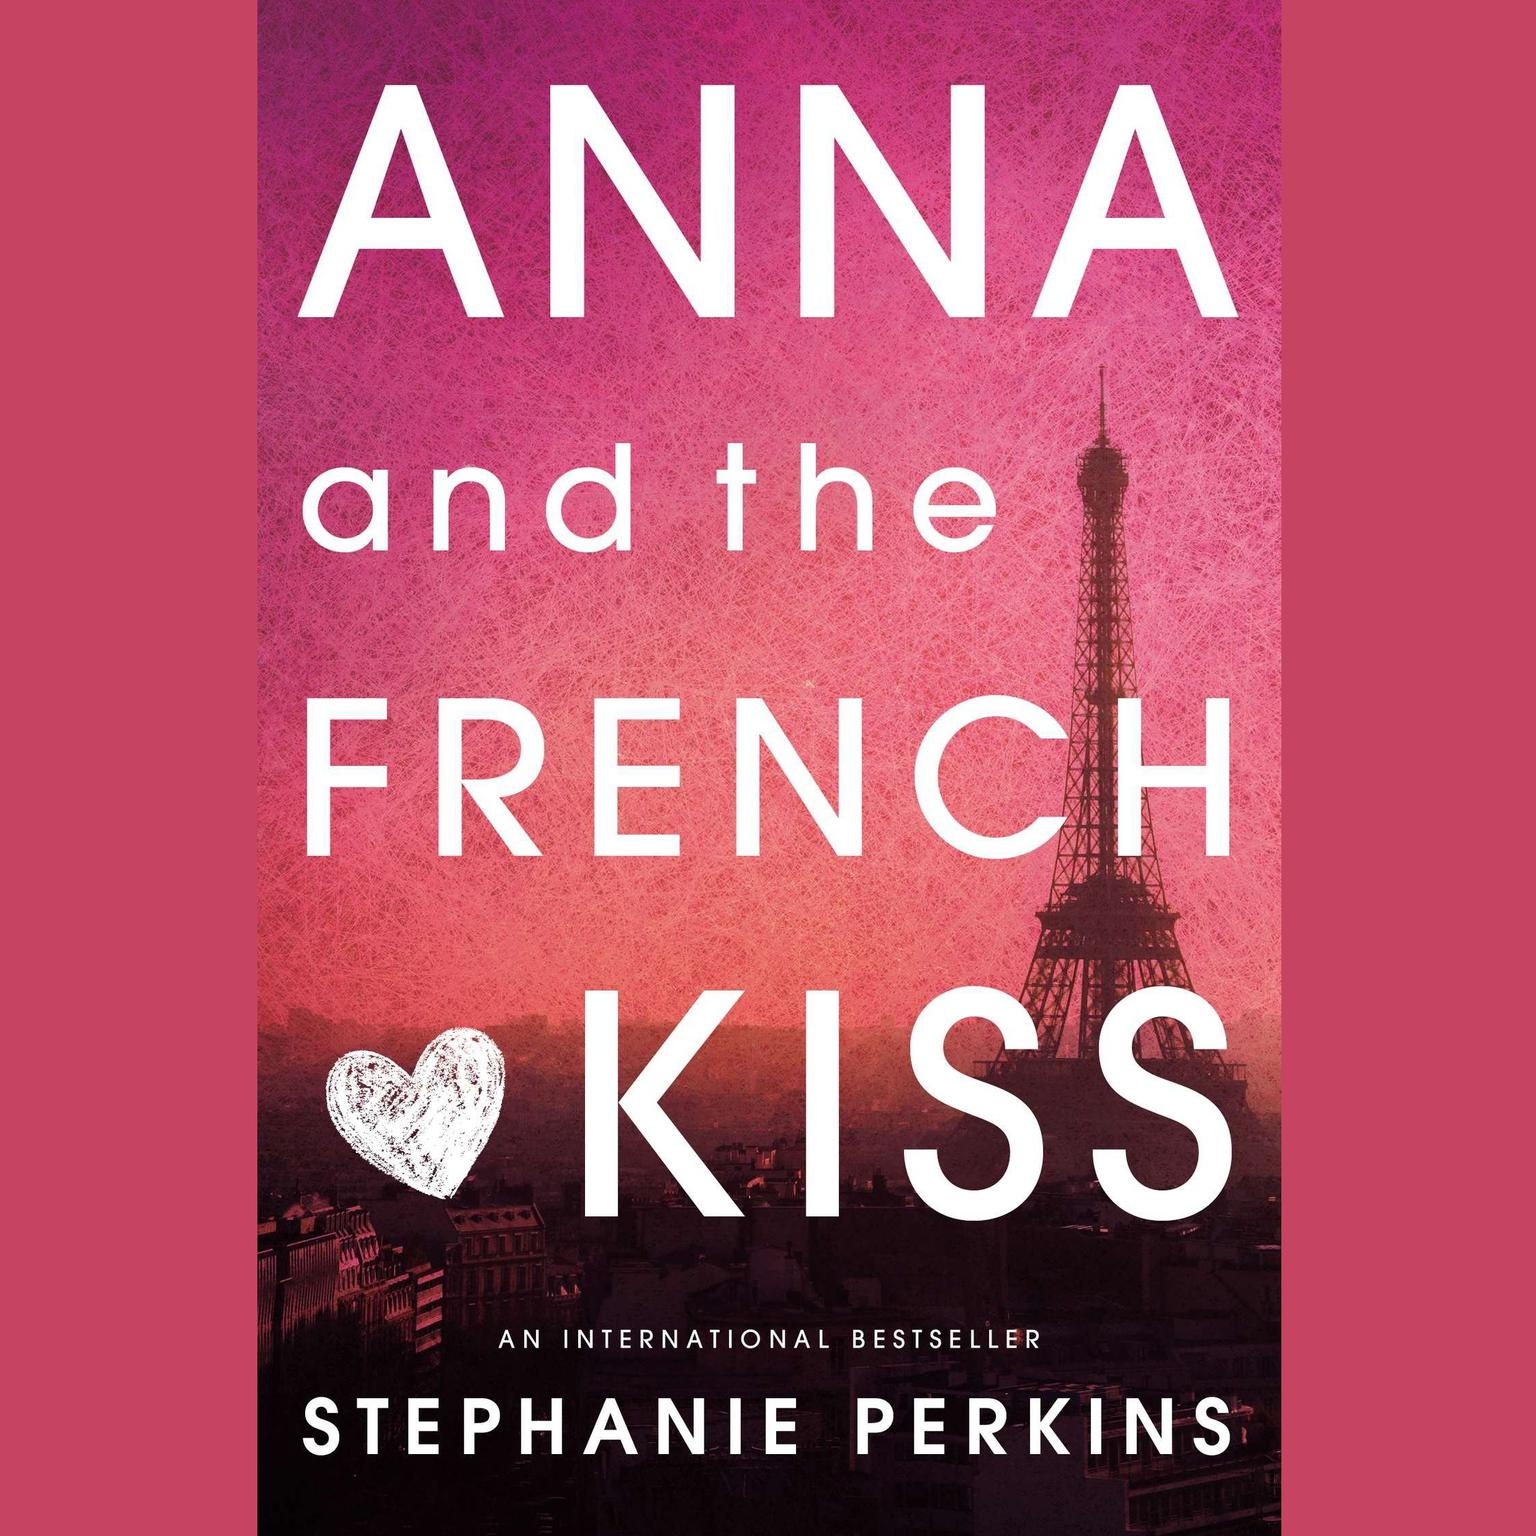 Printable Anna and the French Kiss Audiobook Cover Art